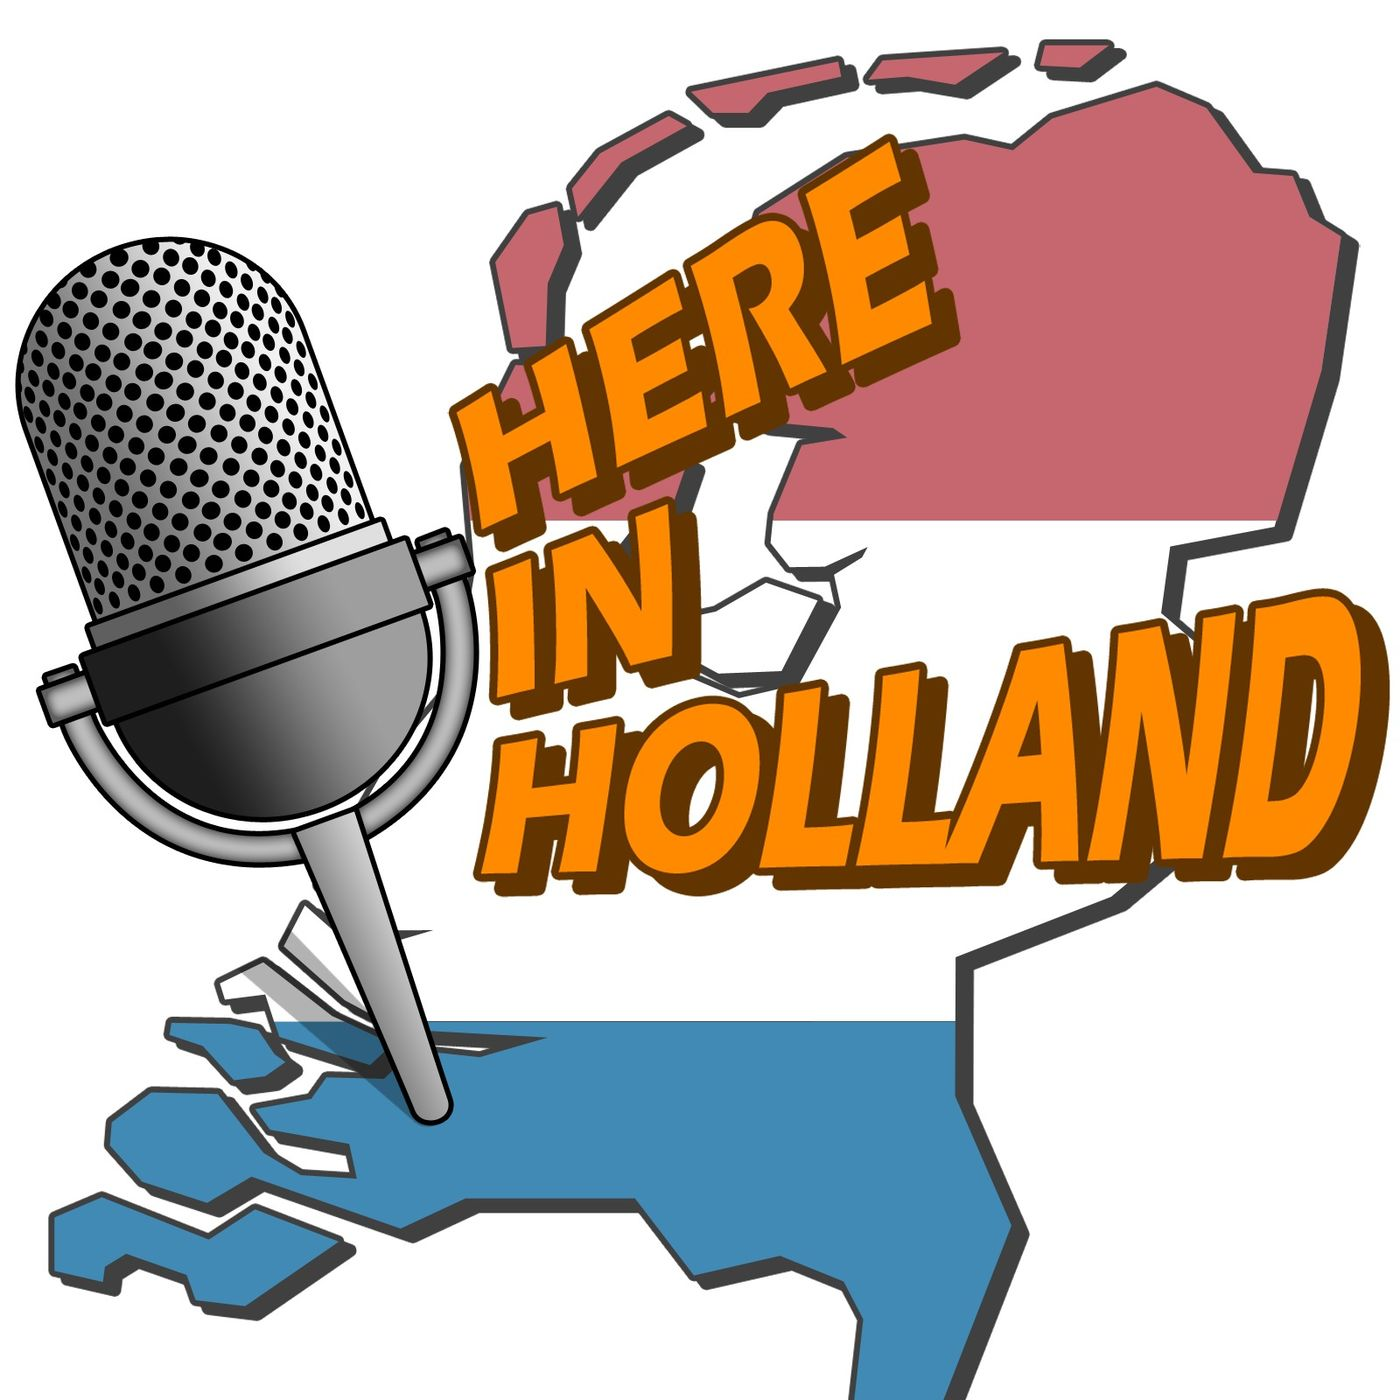 Here in Holland A Musical Challenge